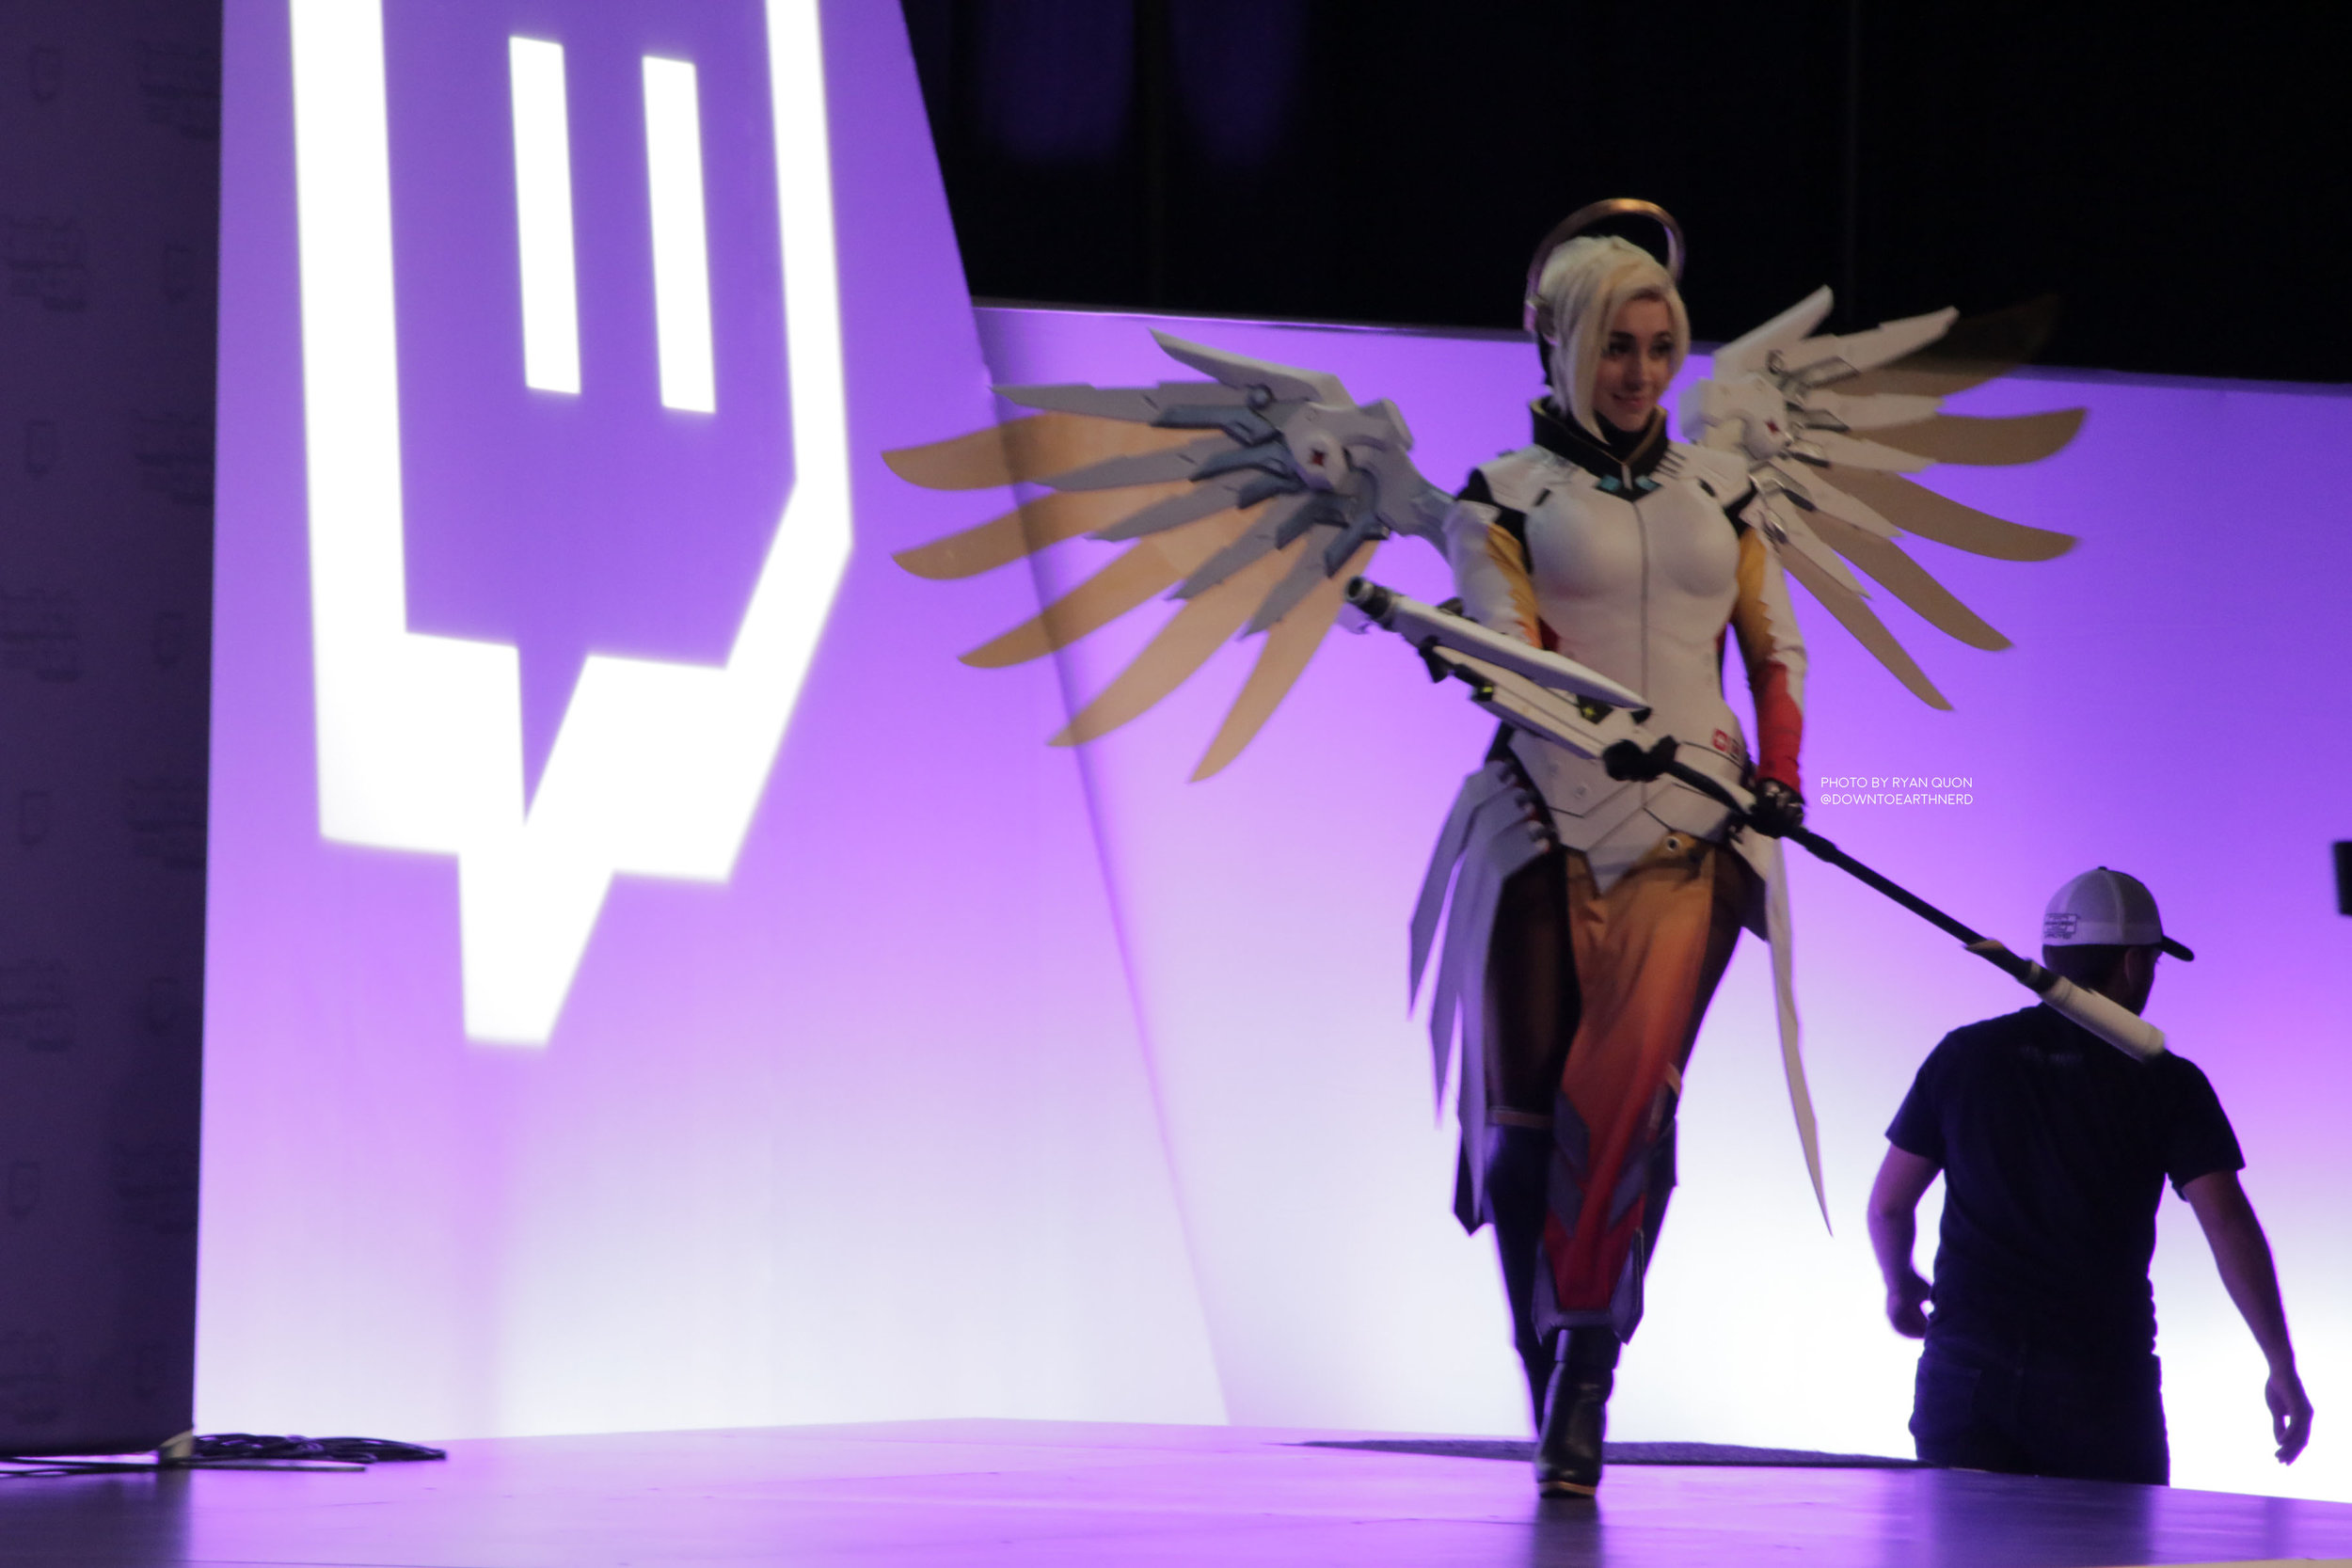 @ashleyoshley Cosplayer from Canada. She won best in her class at Twitch Con 2016